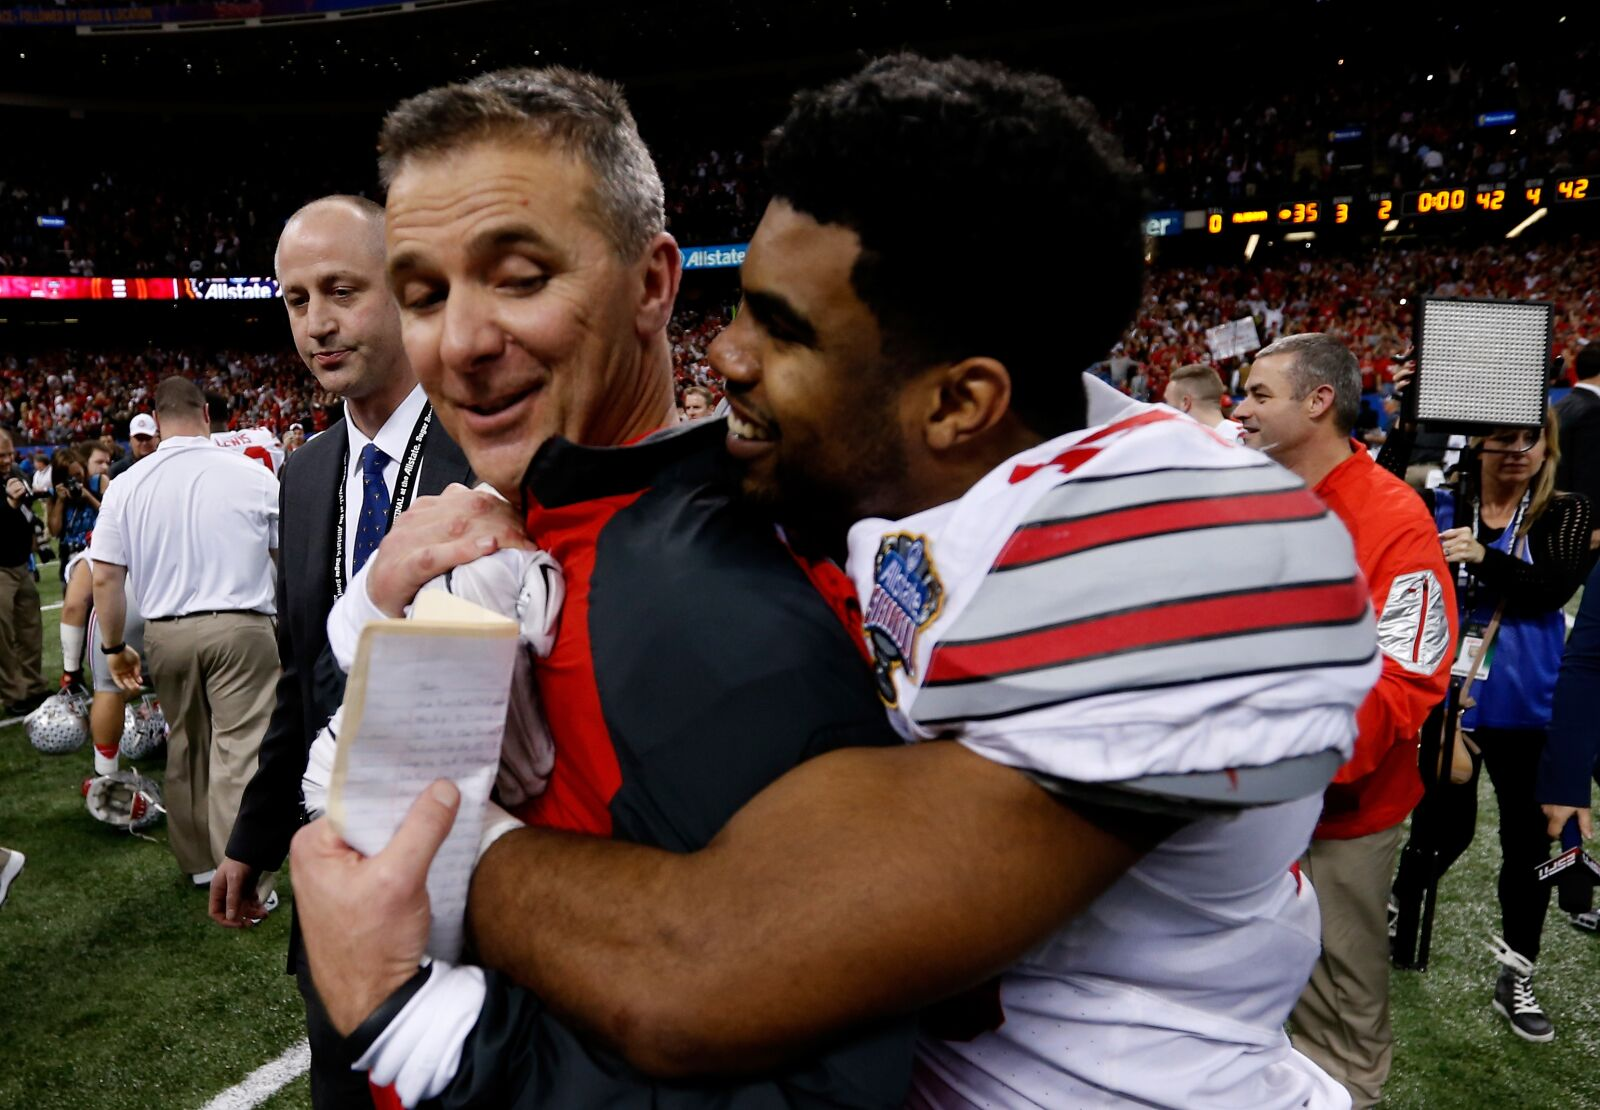 Dallas Cowboys: Could Urban Meyer succeed like Pete Carroll?